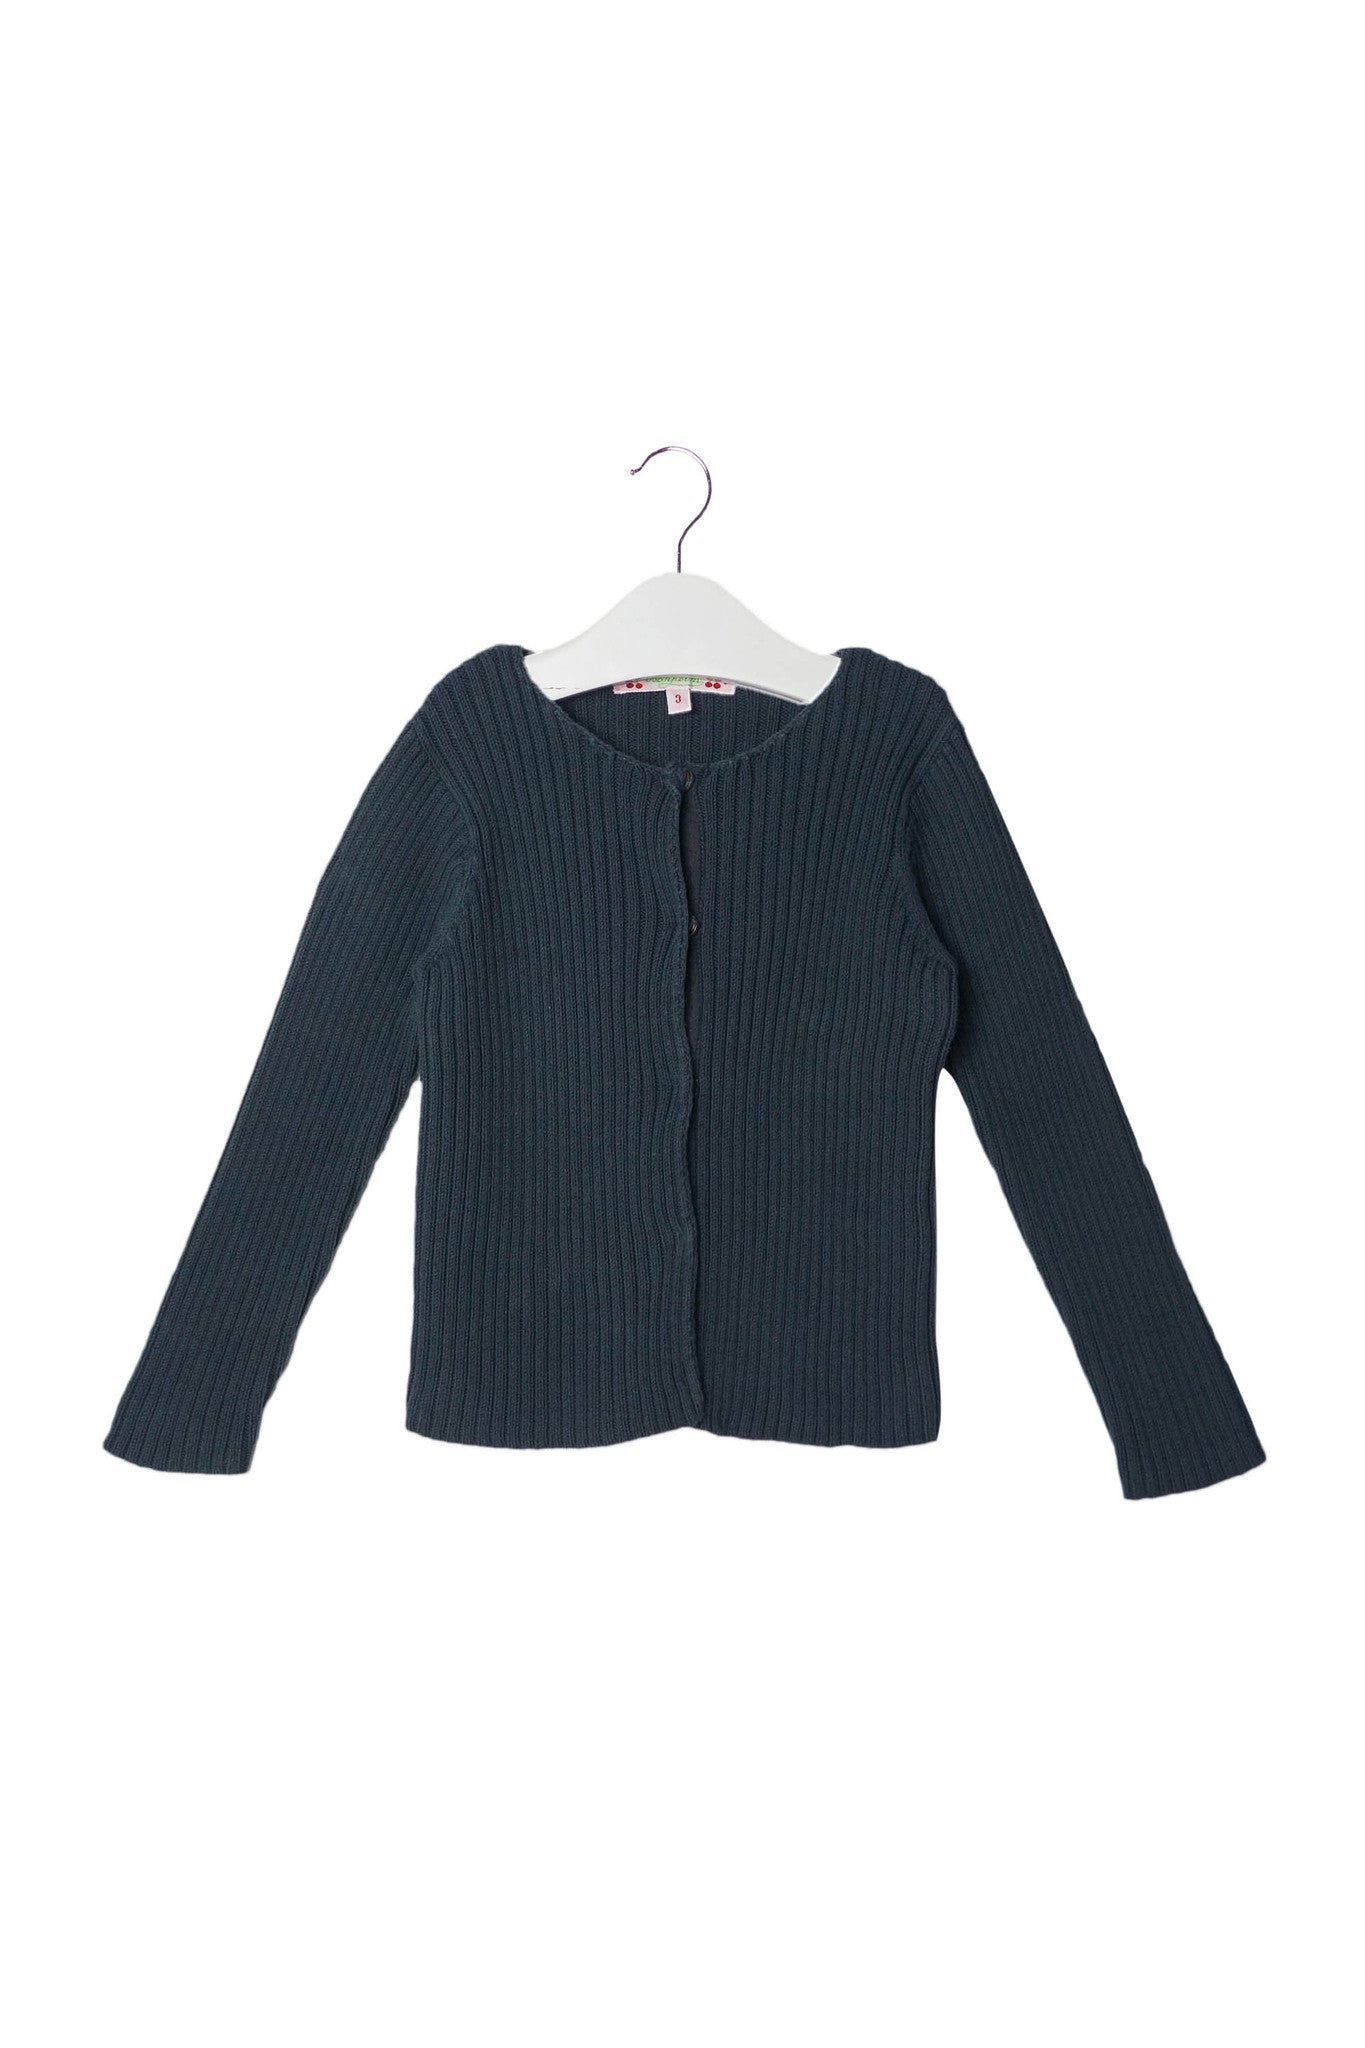 10003008 Bonpoint Kids~Cardigan 3T at Retykle